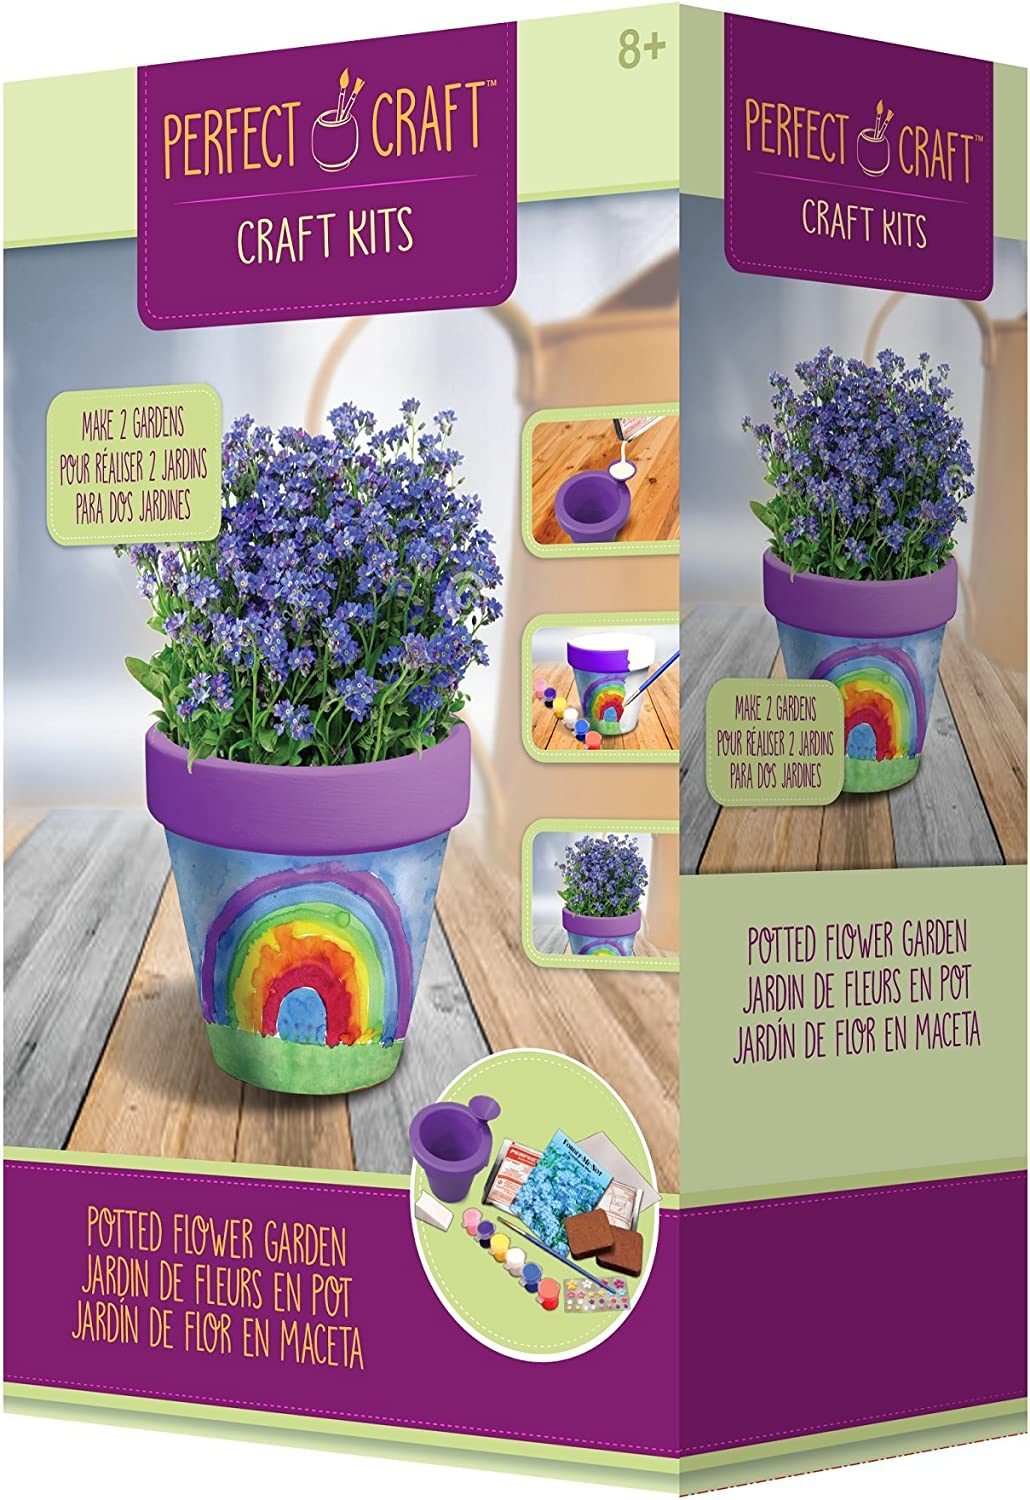 """Perfect Craft Award Winning Cast & Paint 3.25"""" Flower Pot Kit with Perfect Cast Casting Material and Reusable Mold"""